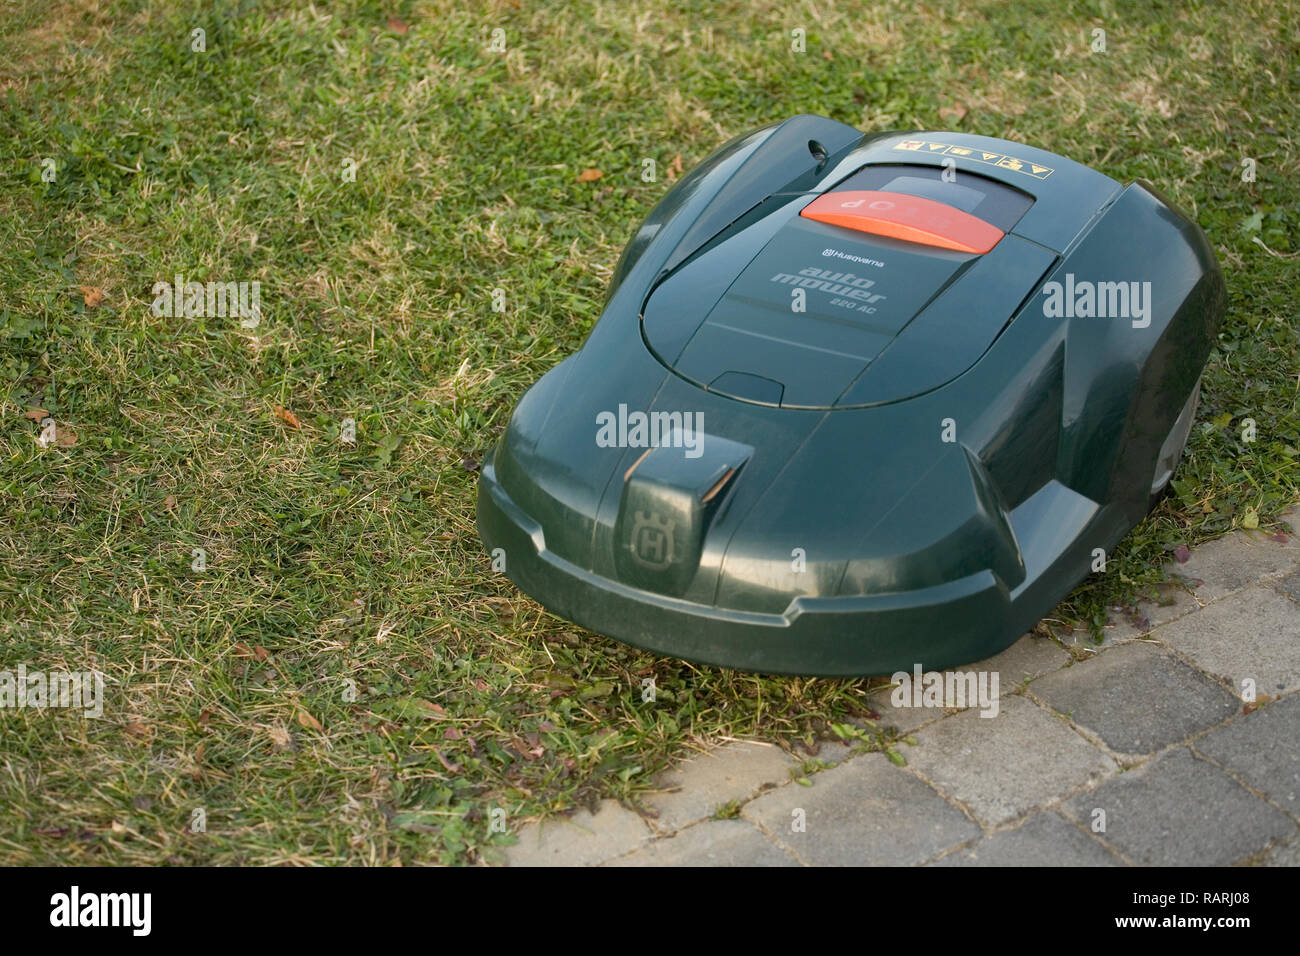 Top view of a green automatic robot lawn mower cutting grass - Stock Image